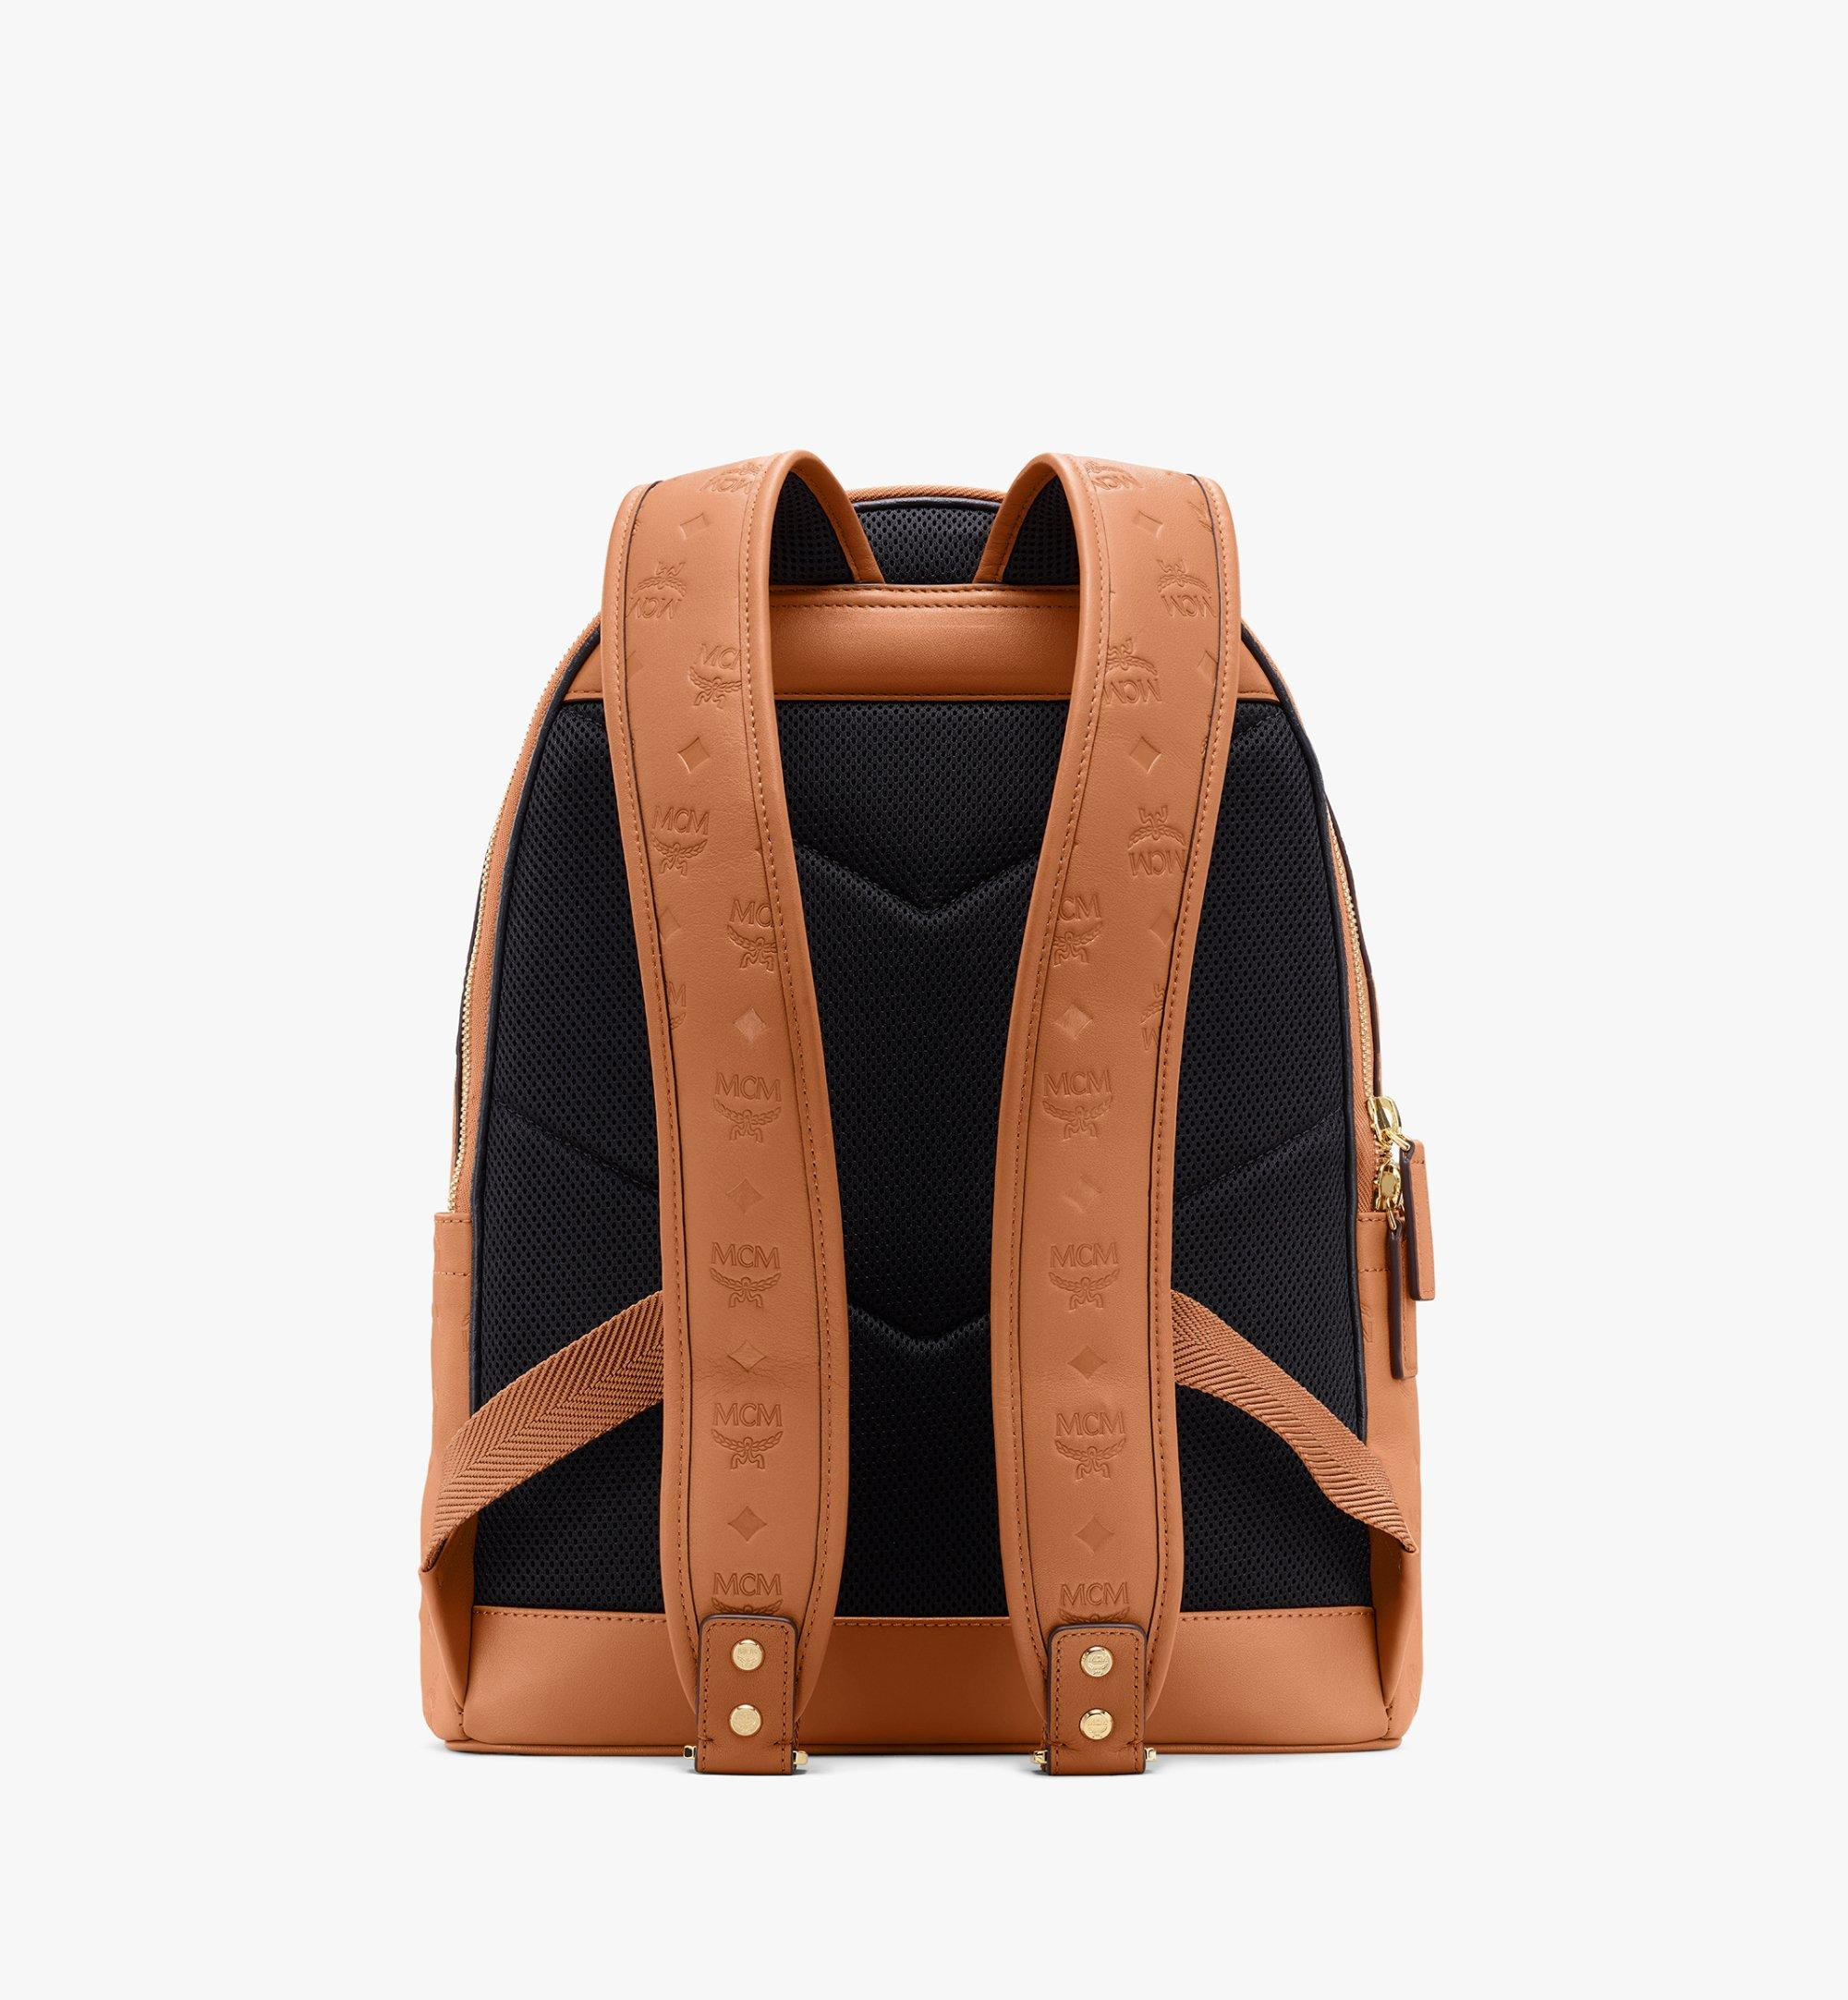 MCM Stark Backpack in Monogram Leather Cognac MMKASVE09CO001 Alternate View 3